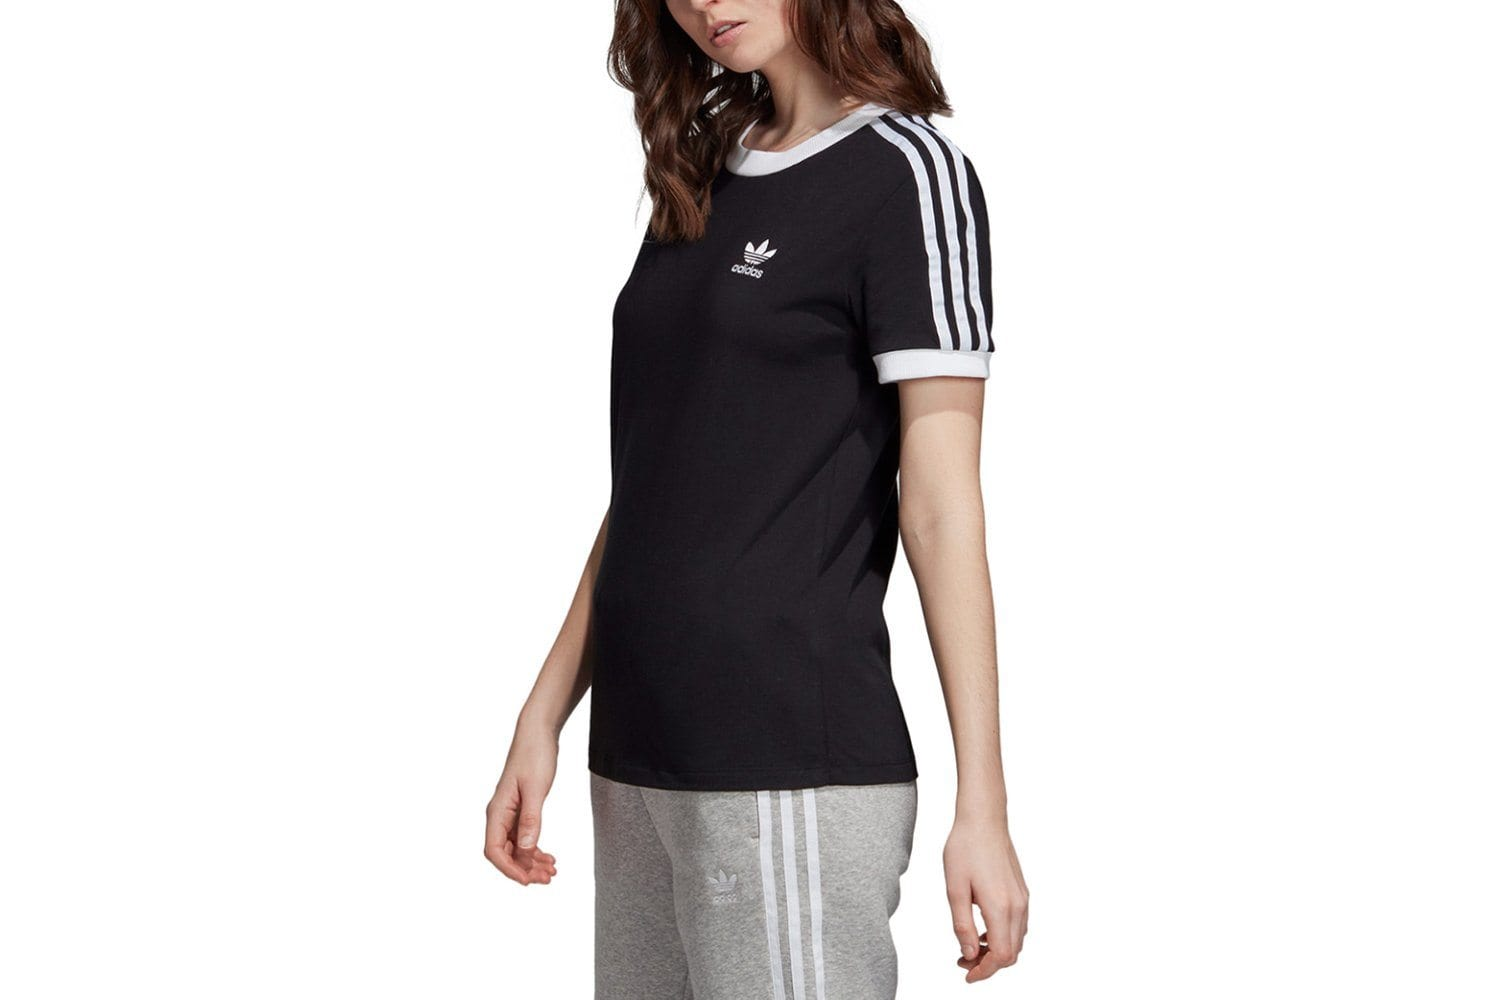 3 STRIPE TEE - ED7482 WOMENS SOFTGOODS ADIDAS